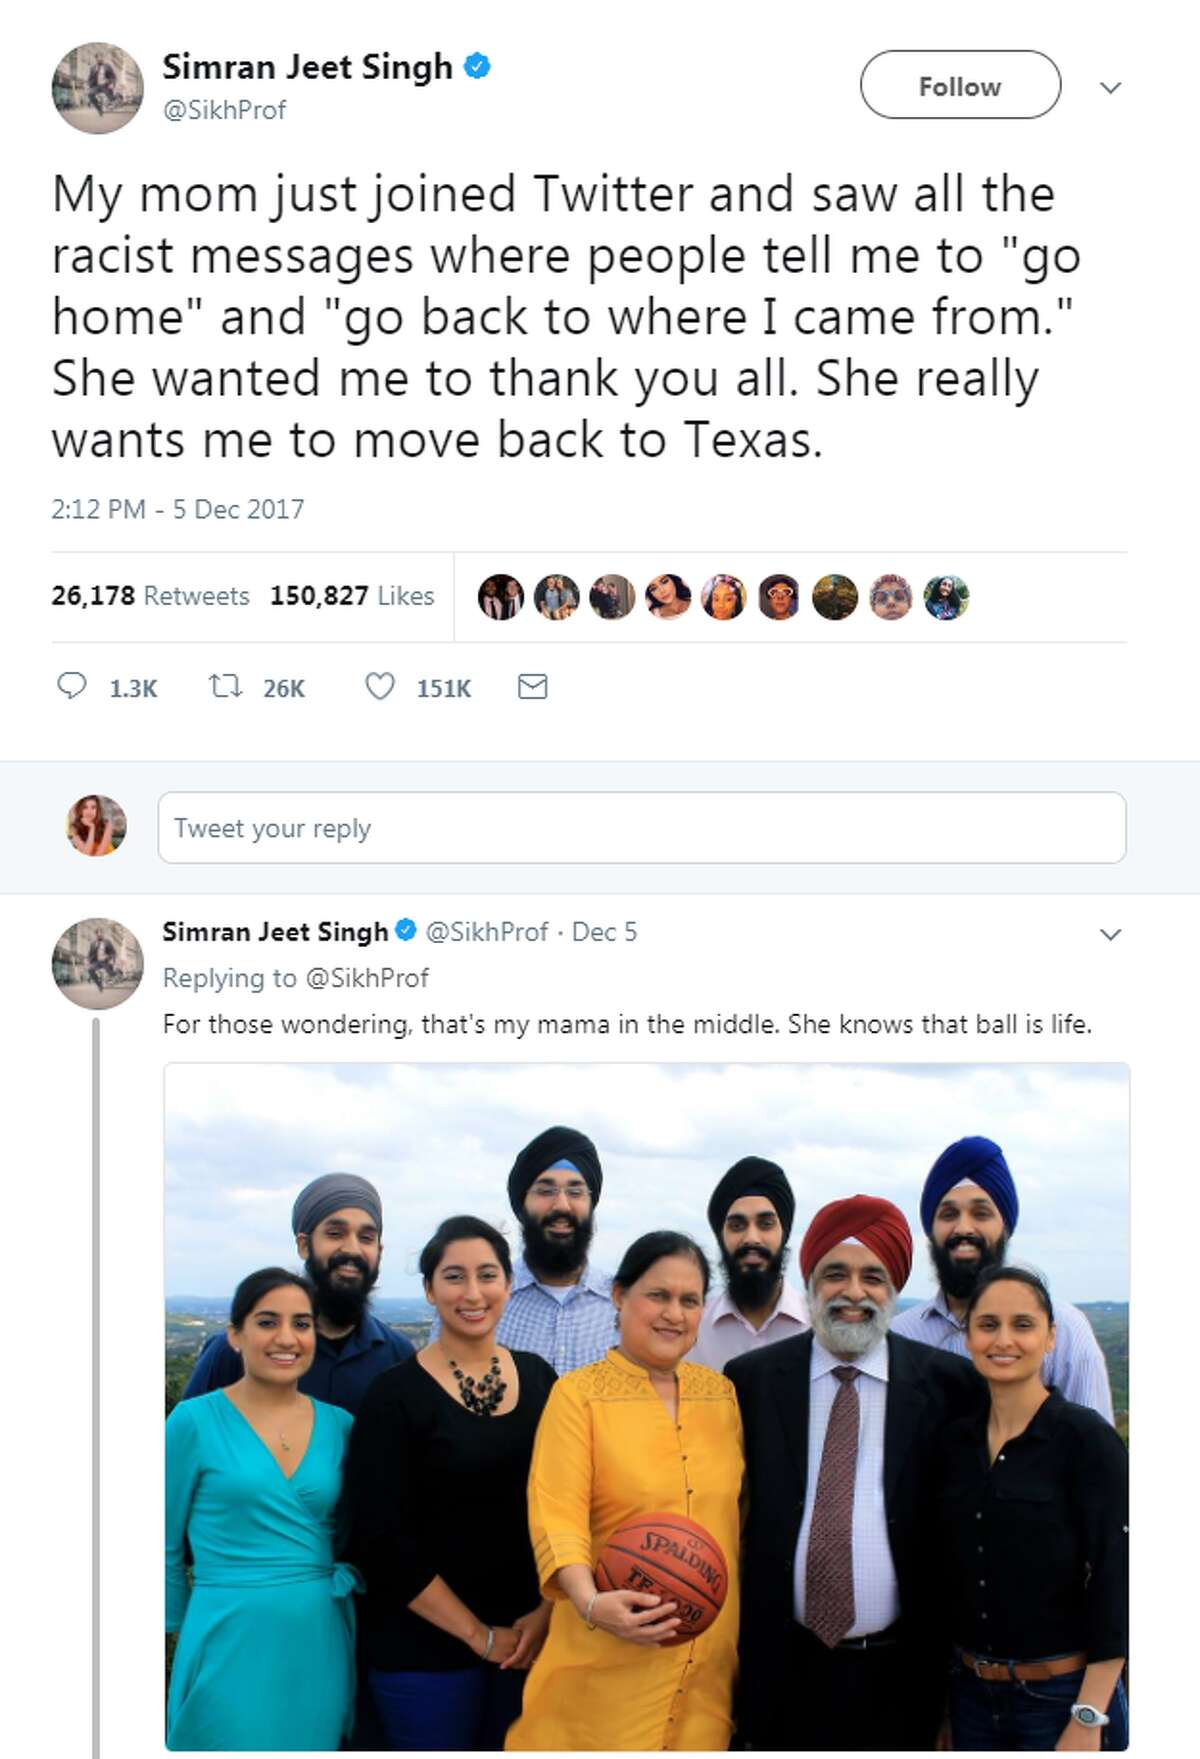 @SikhProf: My mom just joined Twitter and saw all the racist messages where people tell me to